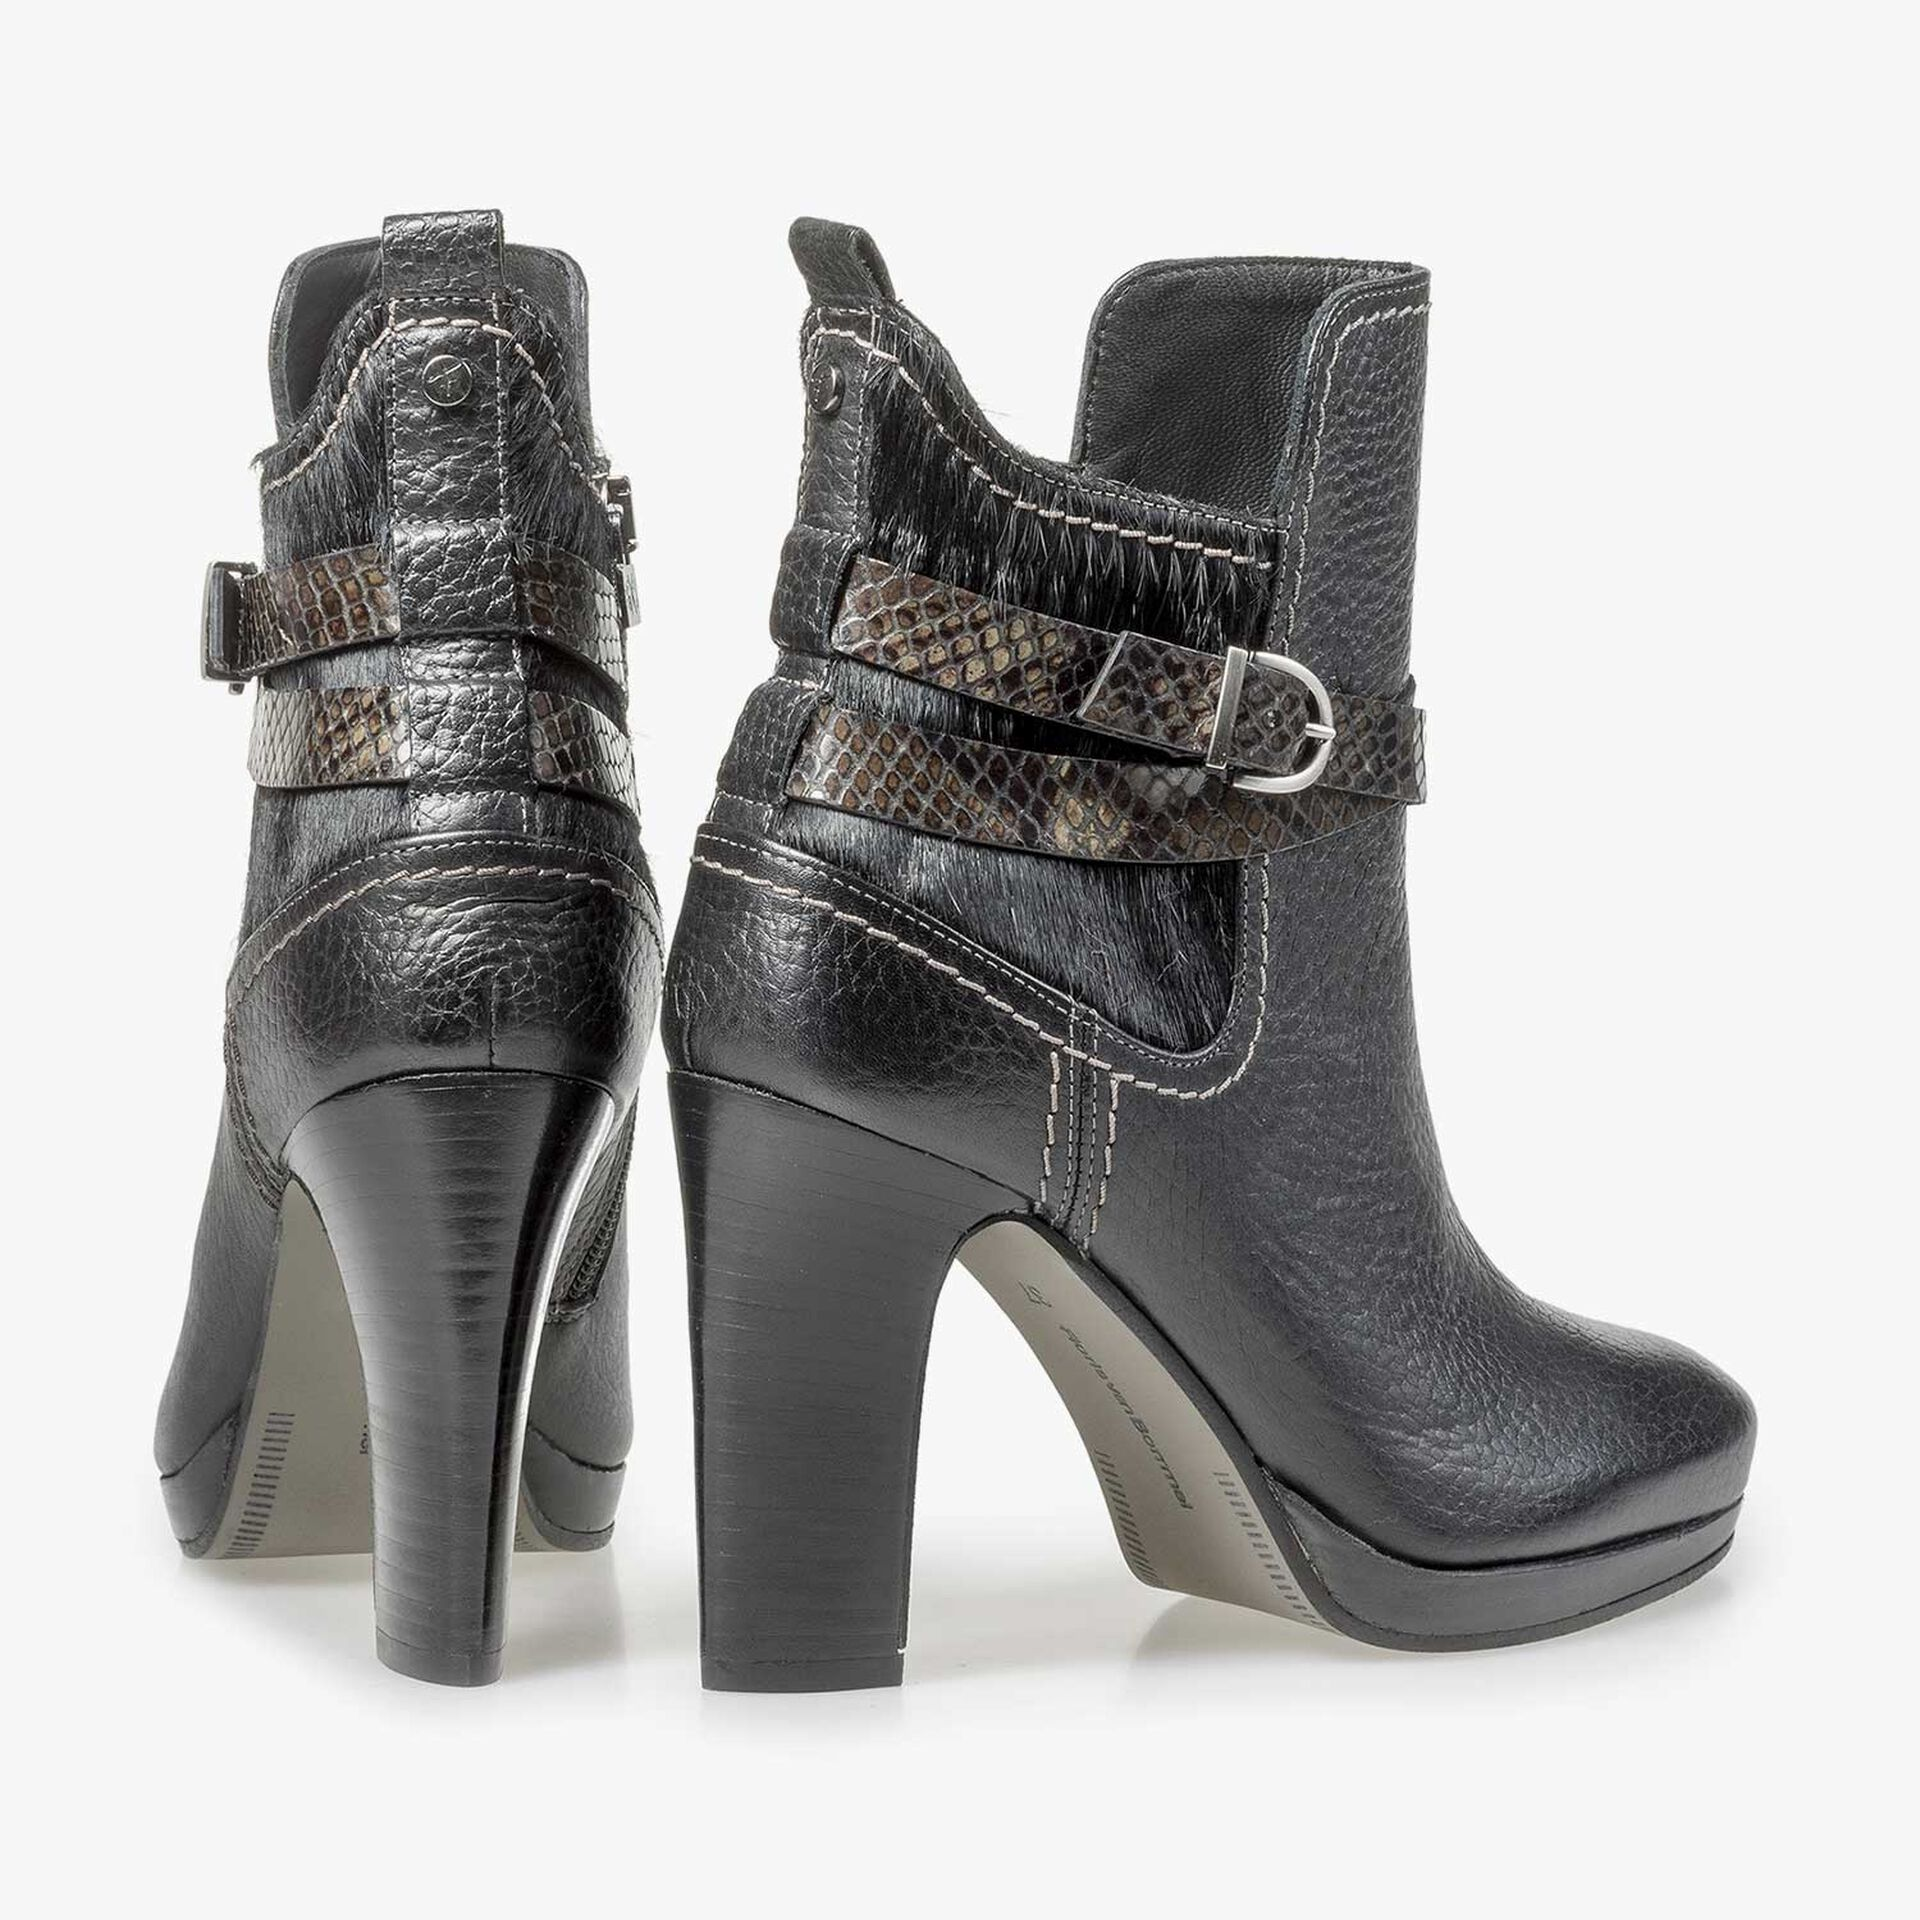 Black calf leather buckle ankle boot